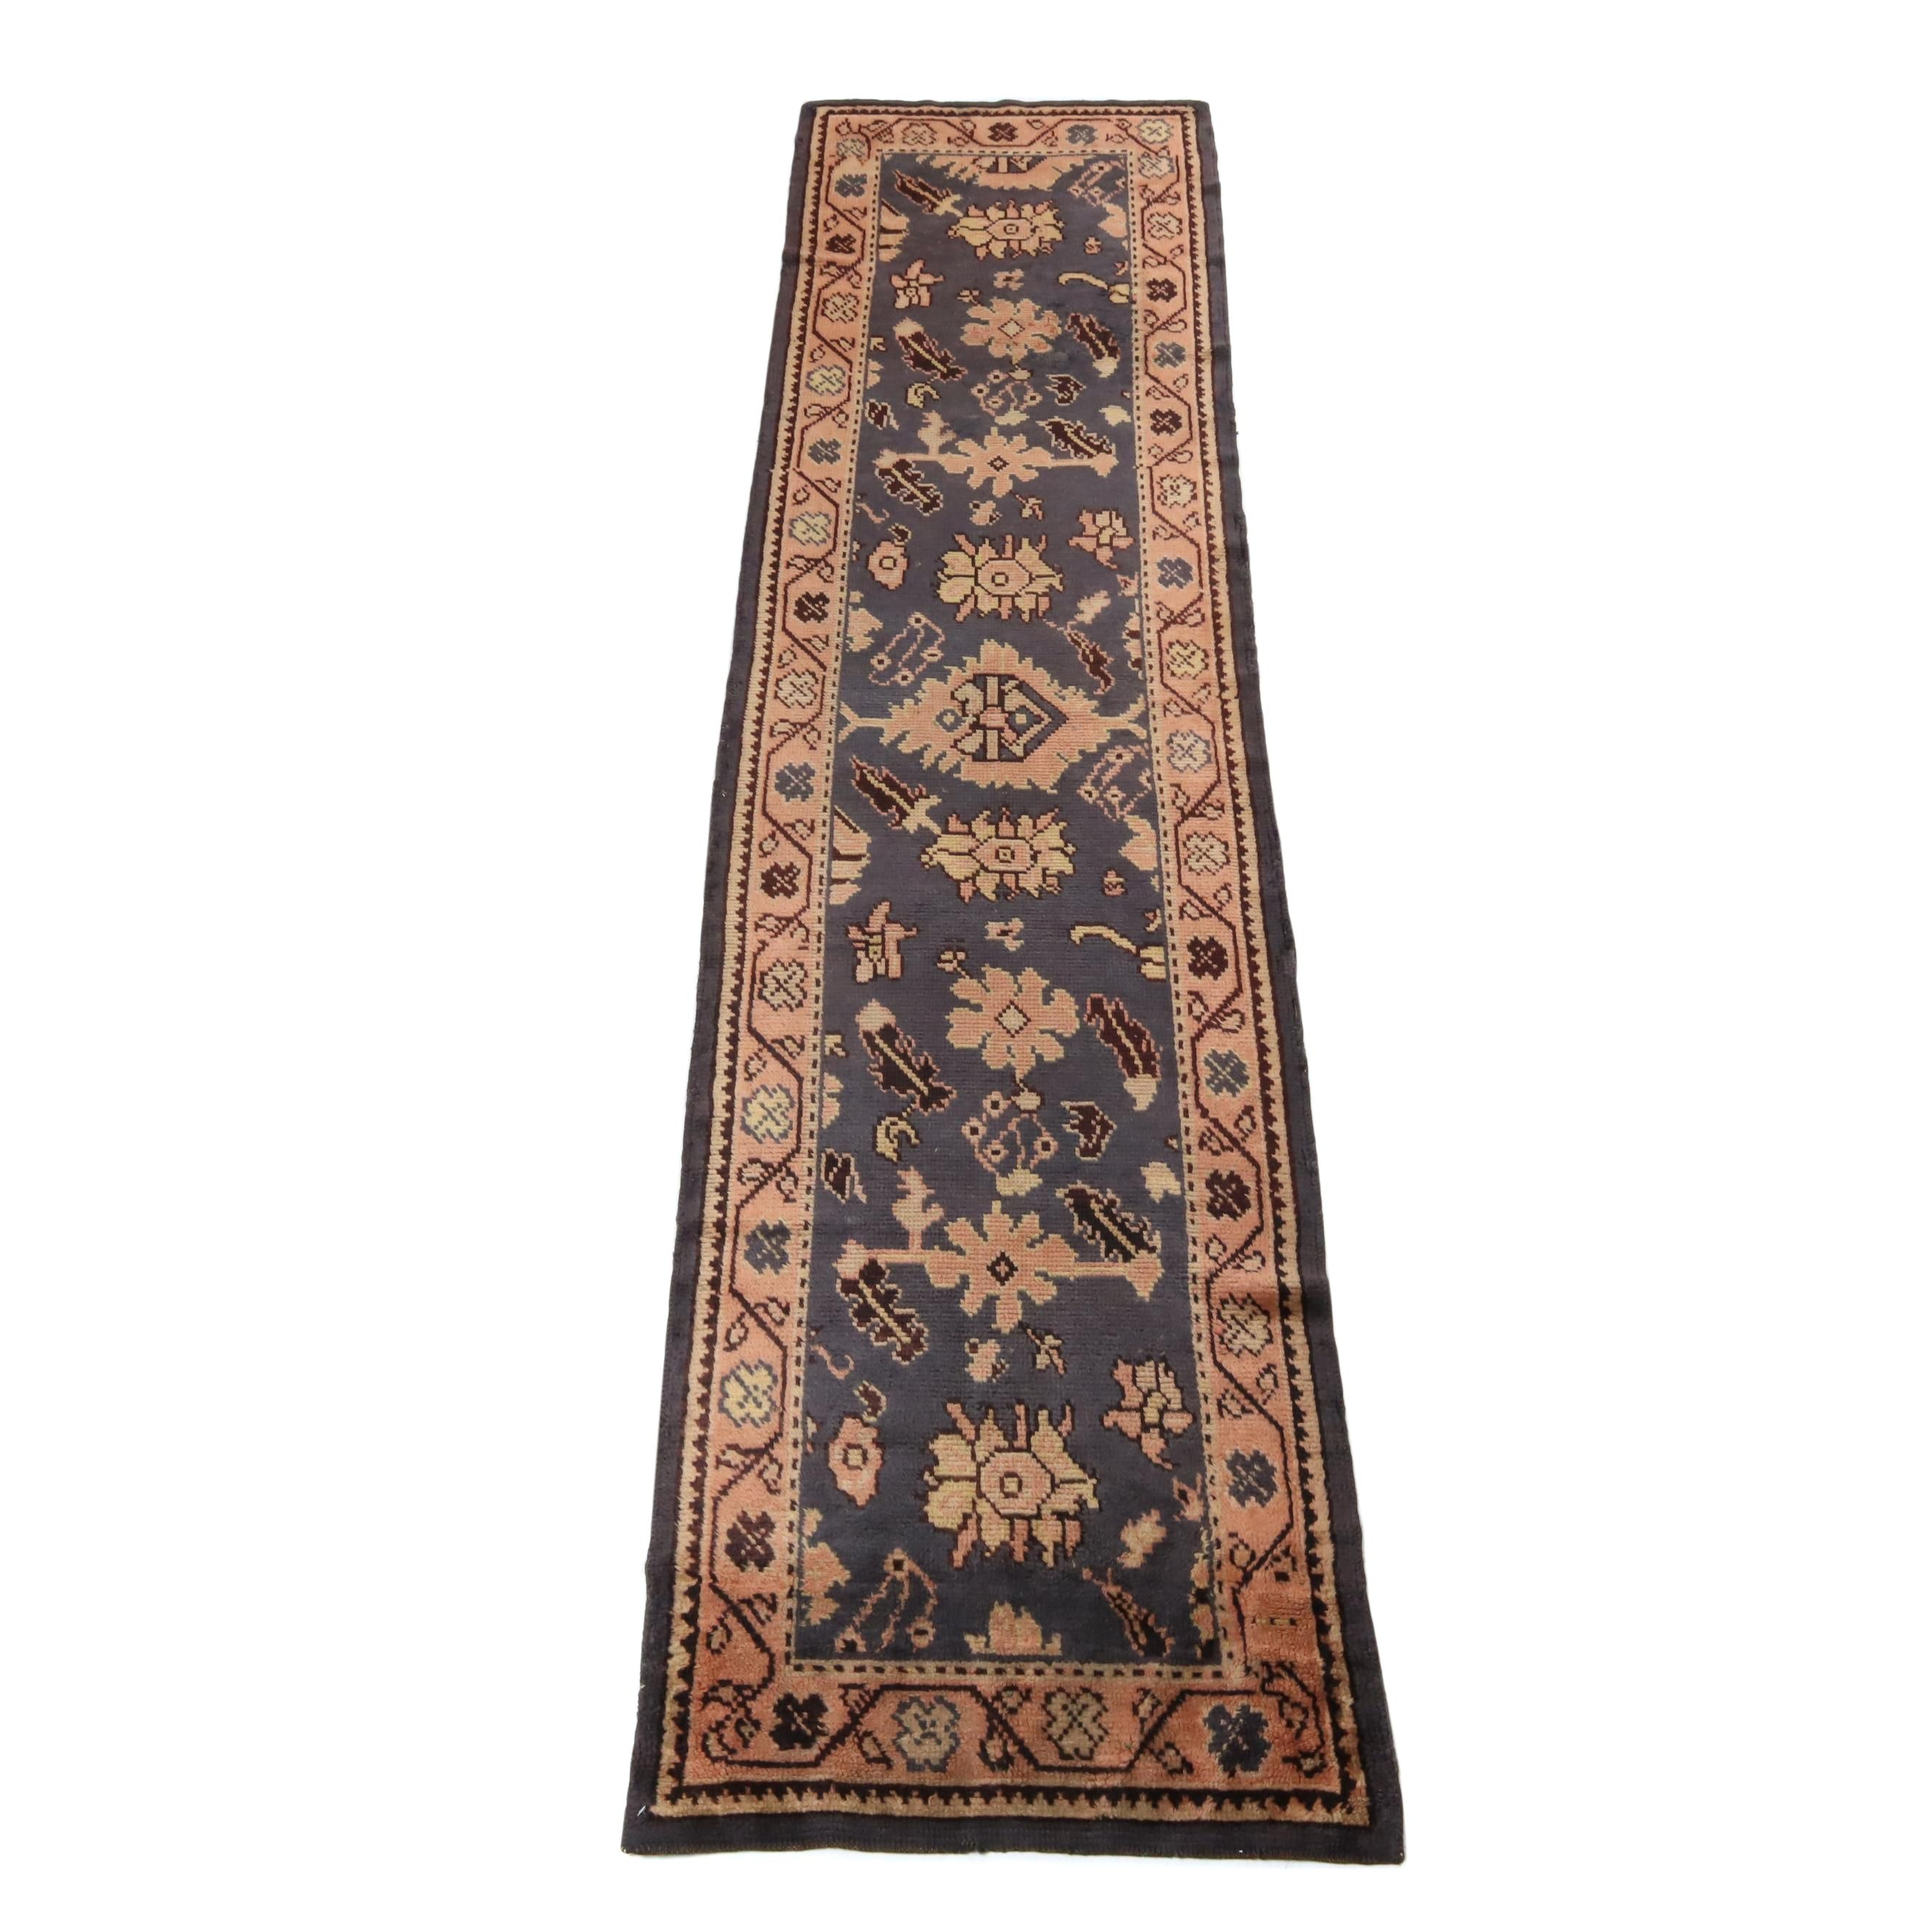 2.10' x 11.4' Hand-Knotted Turkish Oushak Rug Runner, Circa 1920s